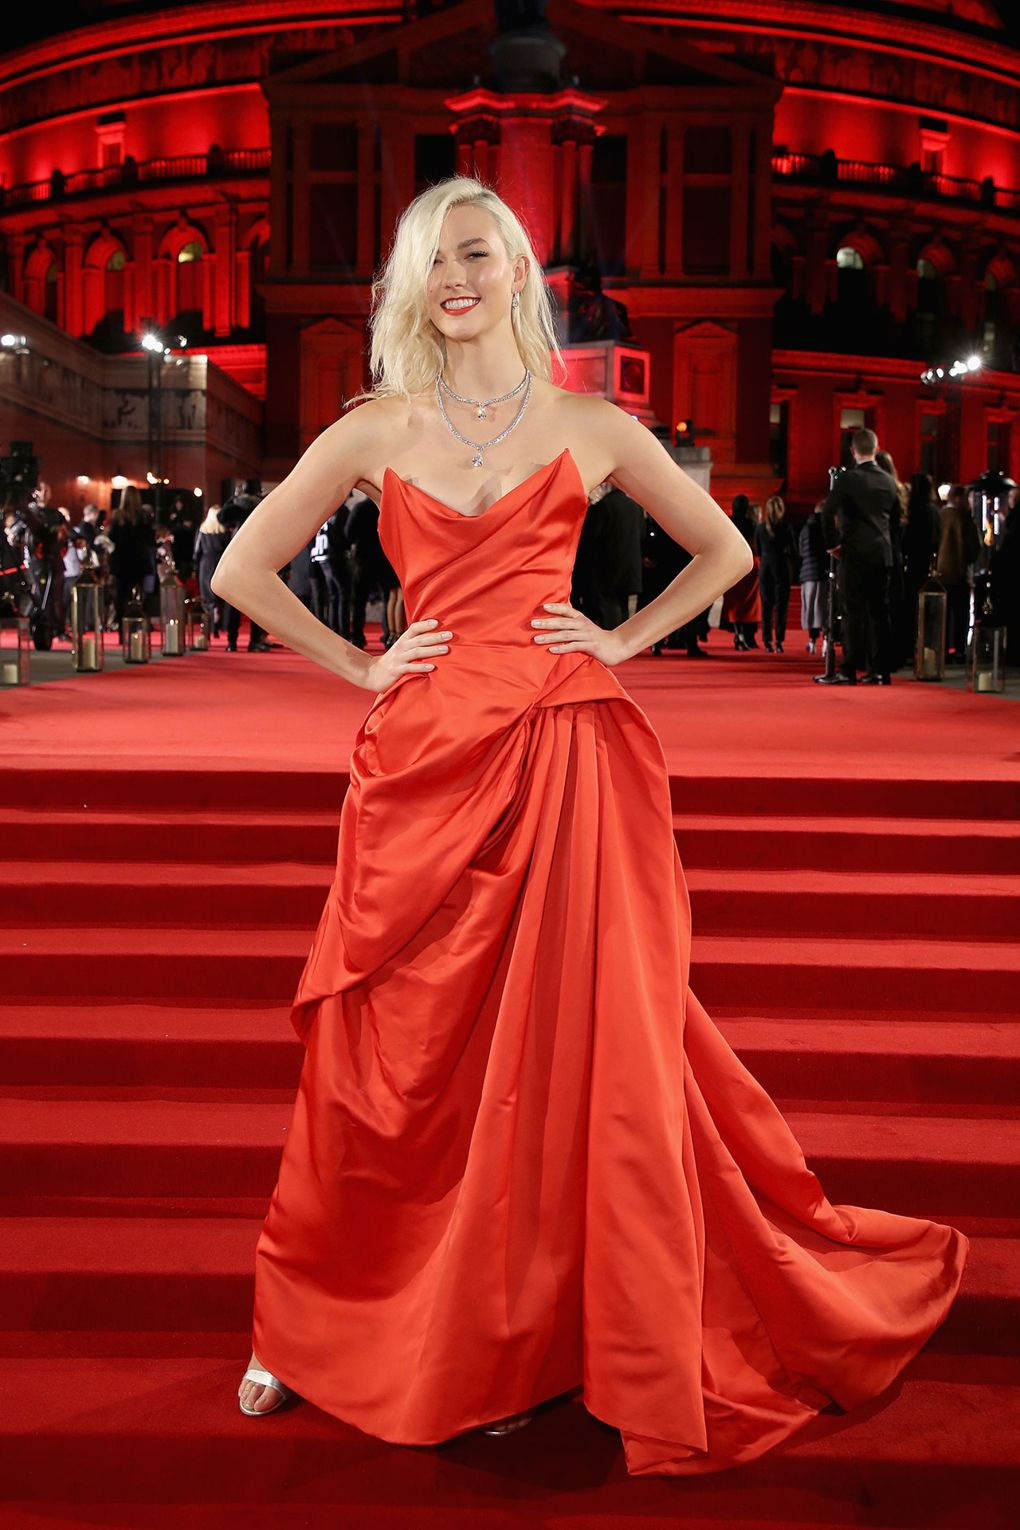 Karlie Kloss in Vivienne Westwood Couture